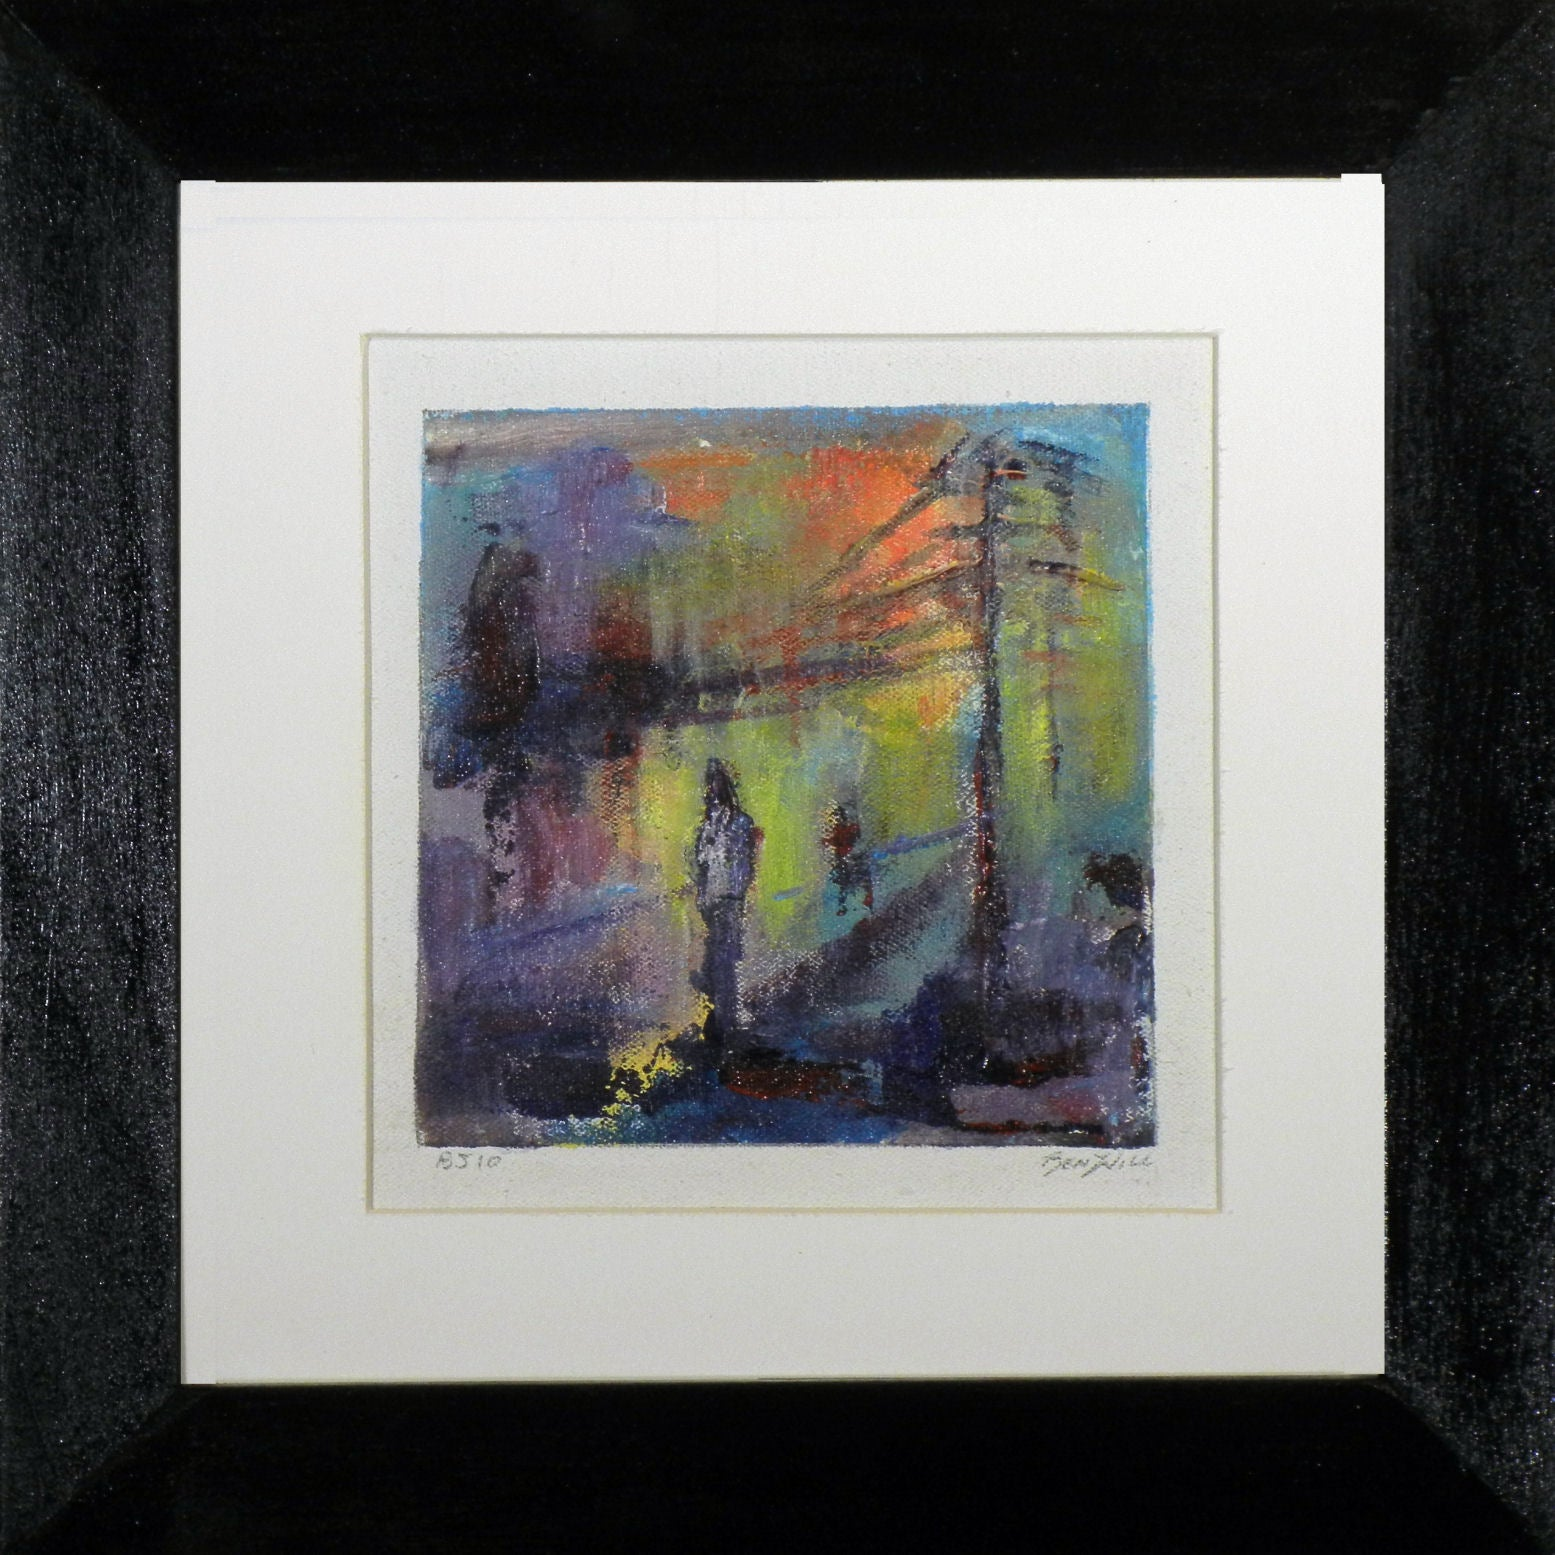 Framed Small Painting BJ10